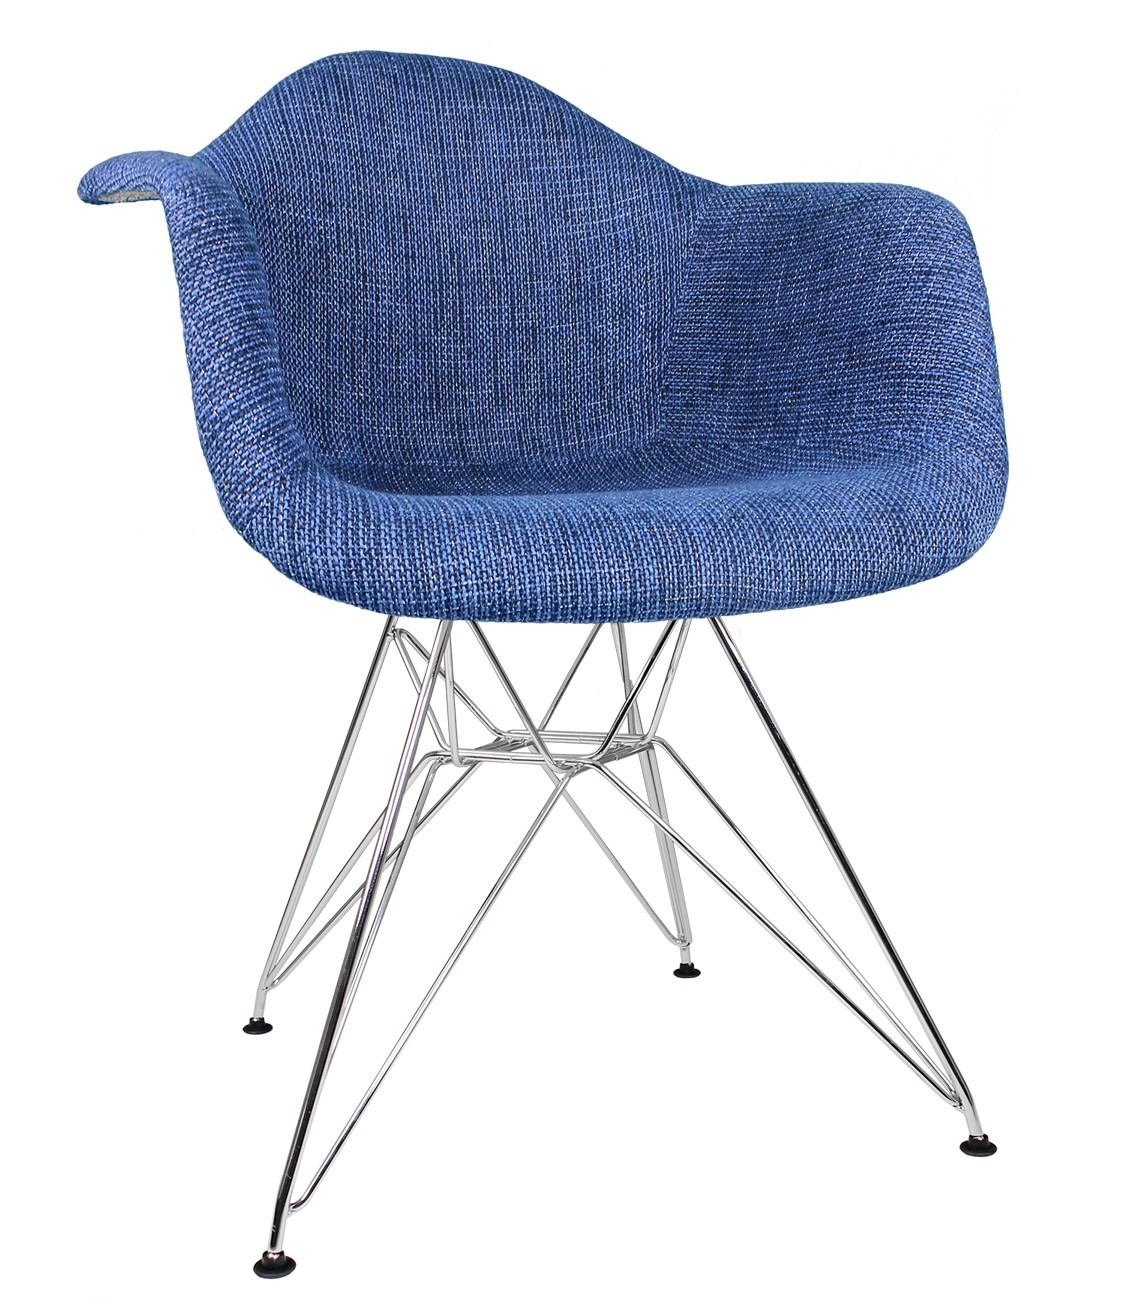 Accent Arm Chairs Denim Blue Woven Fabric Upholstered Accent Arm Chair